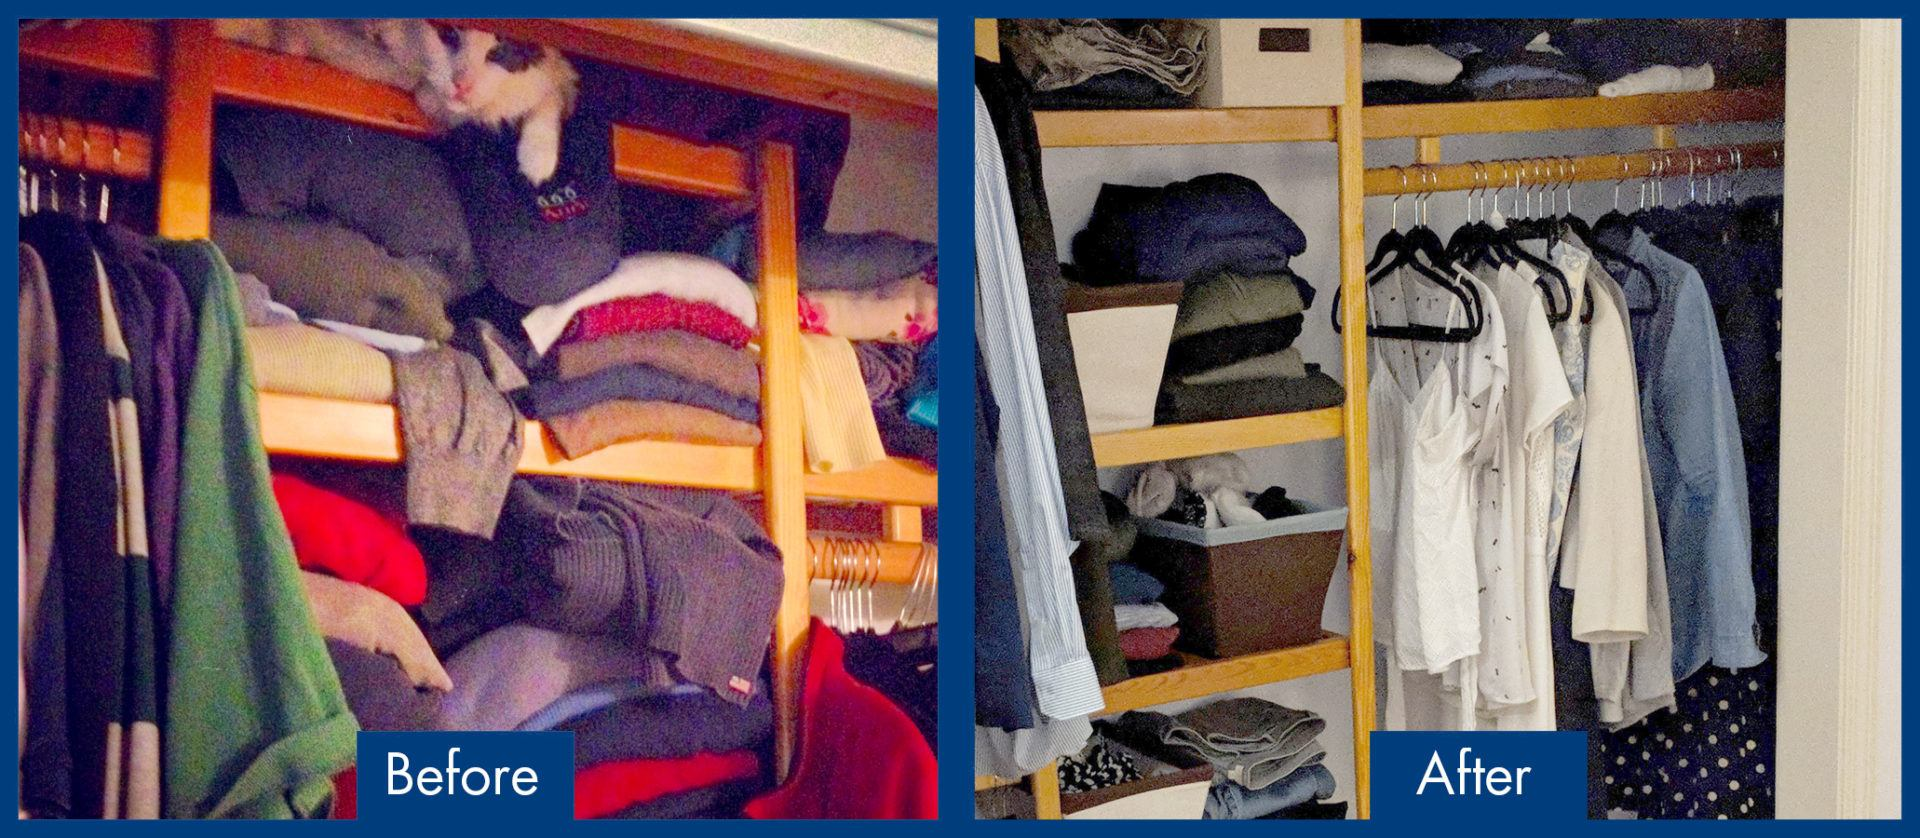 Capsule Wardrobe Before and After